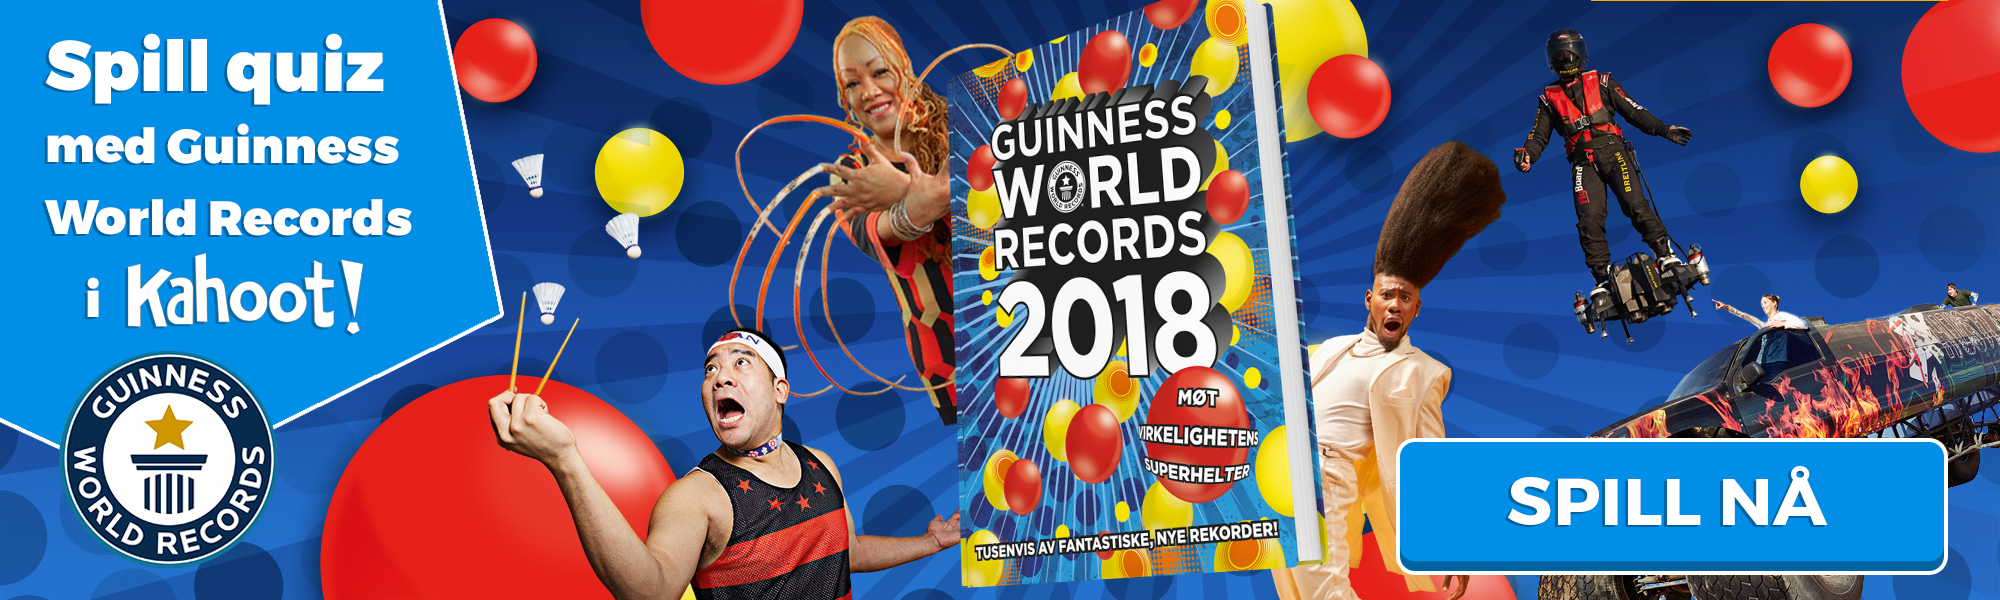 Guinness-World-Records_Kahoot-banner3.png